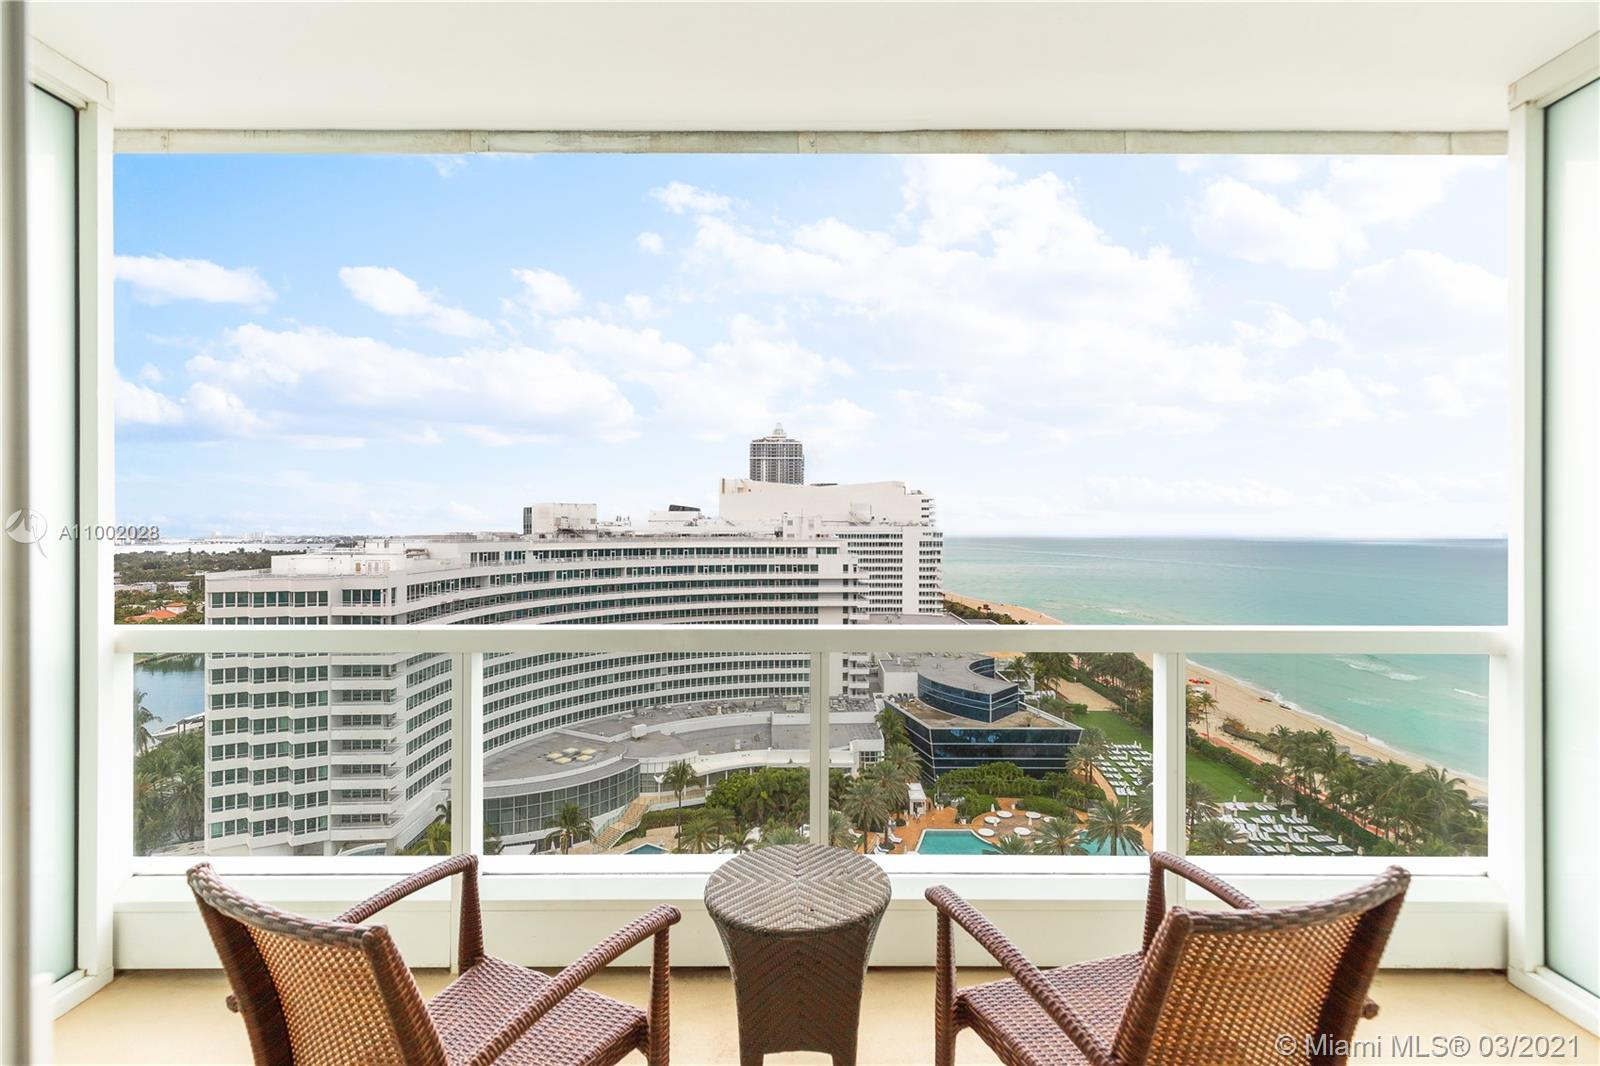 Beautifully appointed refurbished Jr Suite at the infamous Fontainebleau Hotel has ocean and pool views from the 16th floor.  This lovely Jr Suite has a full luxurious bath.  Low maintenance fees include:  local calls, electricity, valet parking, daily breakfast in owners lounge. Enjoy full service, a private Owner's Lounge, King size bed, a sleeper, & much more to enjoy the resort living. Owner has the option to enroll in the hotel rental program and receive income when not in use.  The Fontainebleau Resort's amenities are Five Star with luxury amenities sitting on 22 oceanfront acres.  Fabulous award wining restaurants on premises; LIV Nightclub, gorgeous full service Lapis Spa, state of the art fitness center,